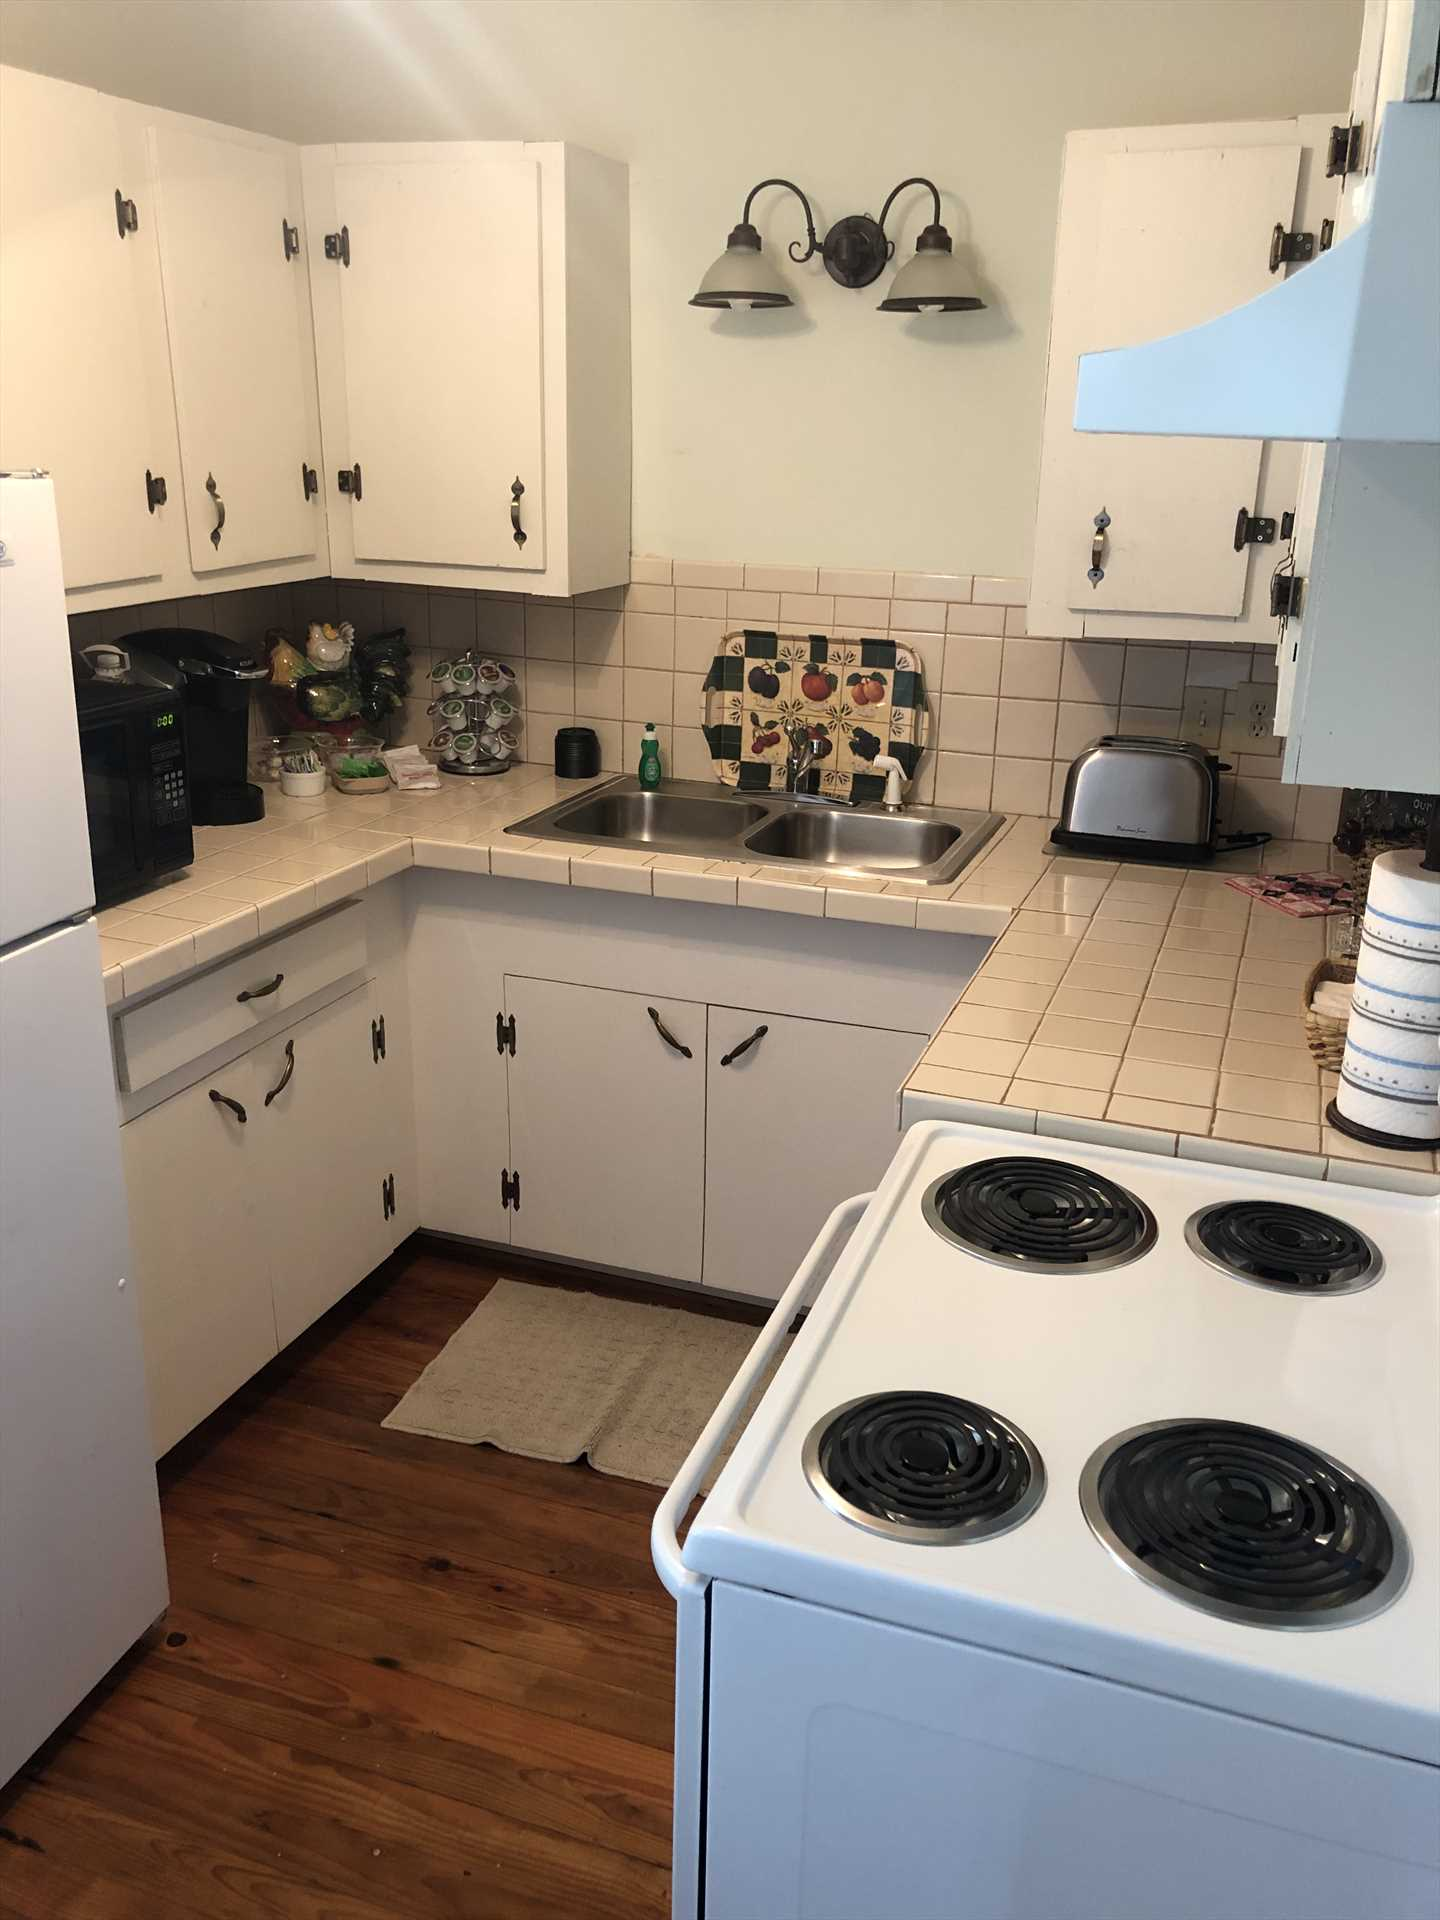 Appliances, cooking ware, and serving ware are provided in the full kitchen. You'll also be pampered with complimentary breakfast and home-baked cookies!